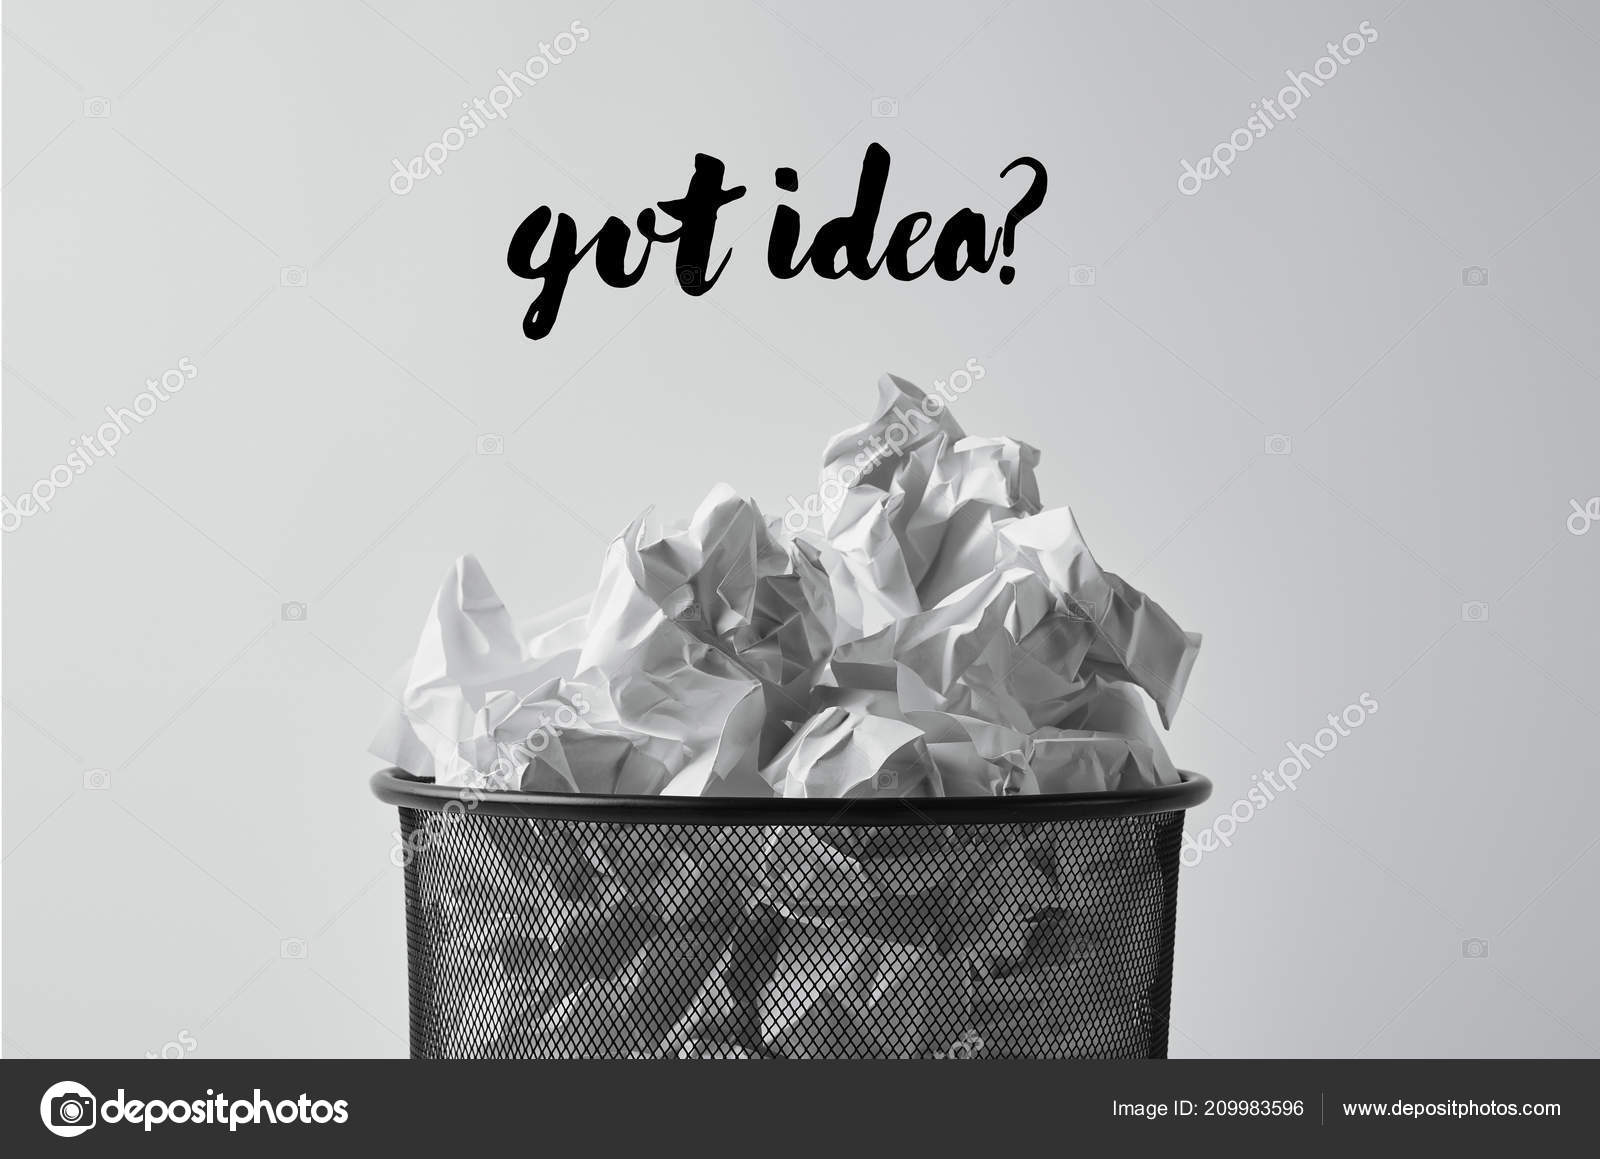 Close Shot Office Trash Bin Crumpled Papers Isolated White Got Stock Photo C Antonmatyukha 209983596